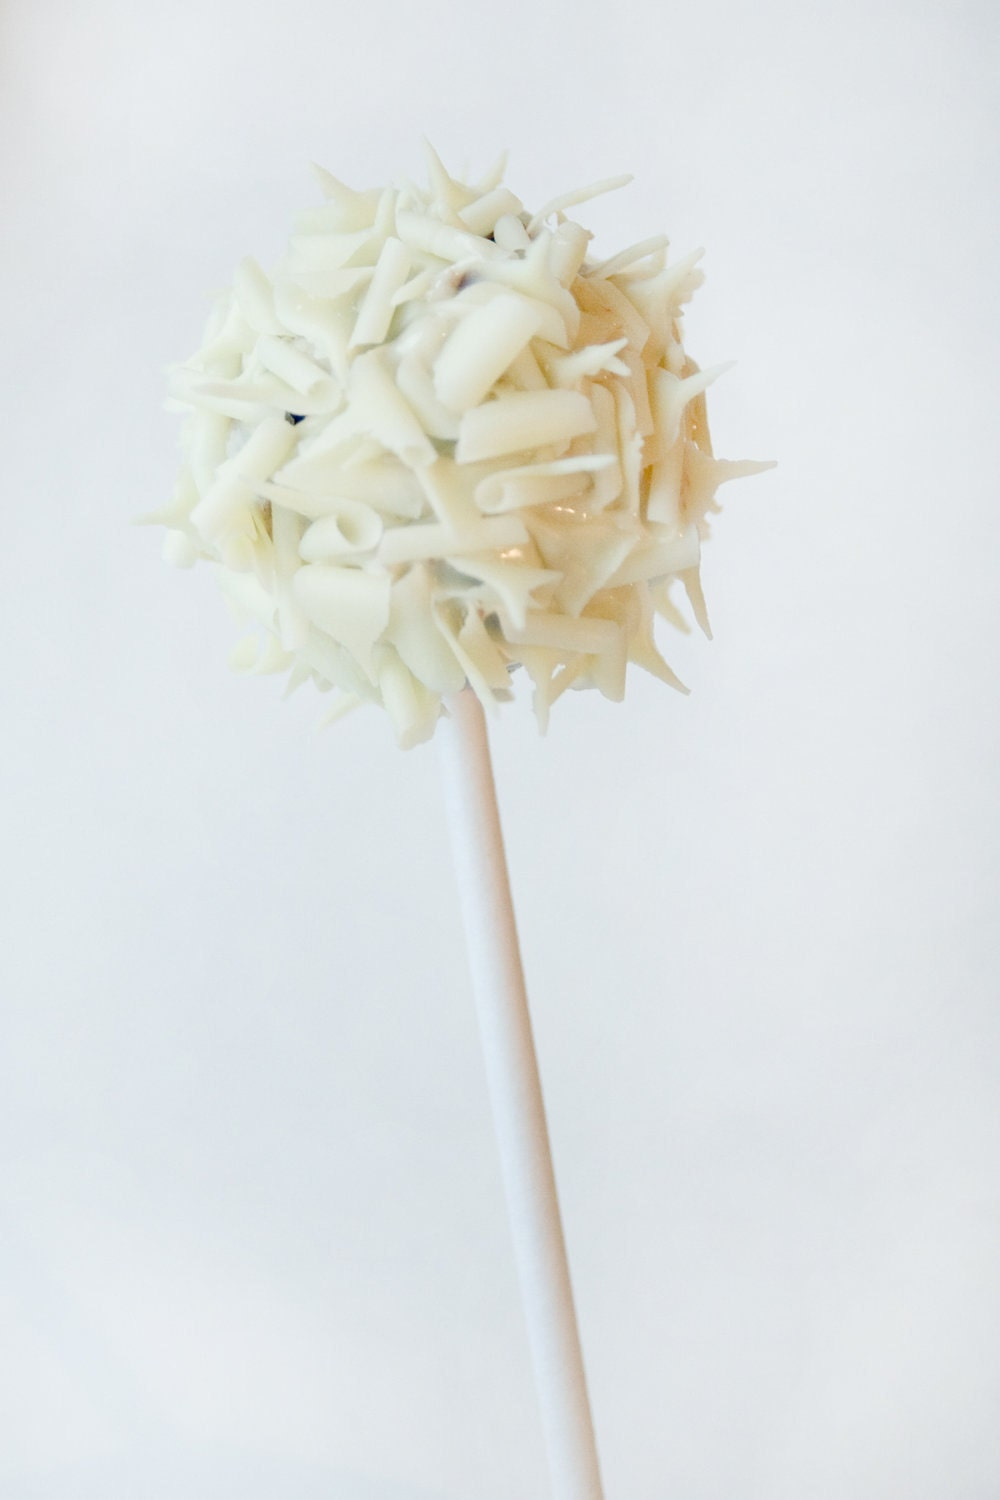 Rich homemade chocolate truffle pop coated in white chocolate and white chocolate curls - 6 - Trufflicious